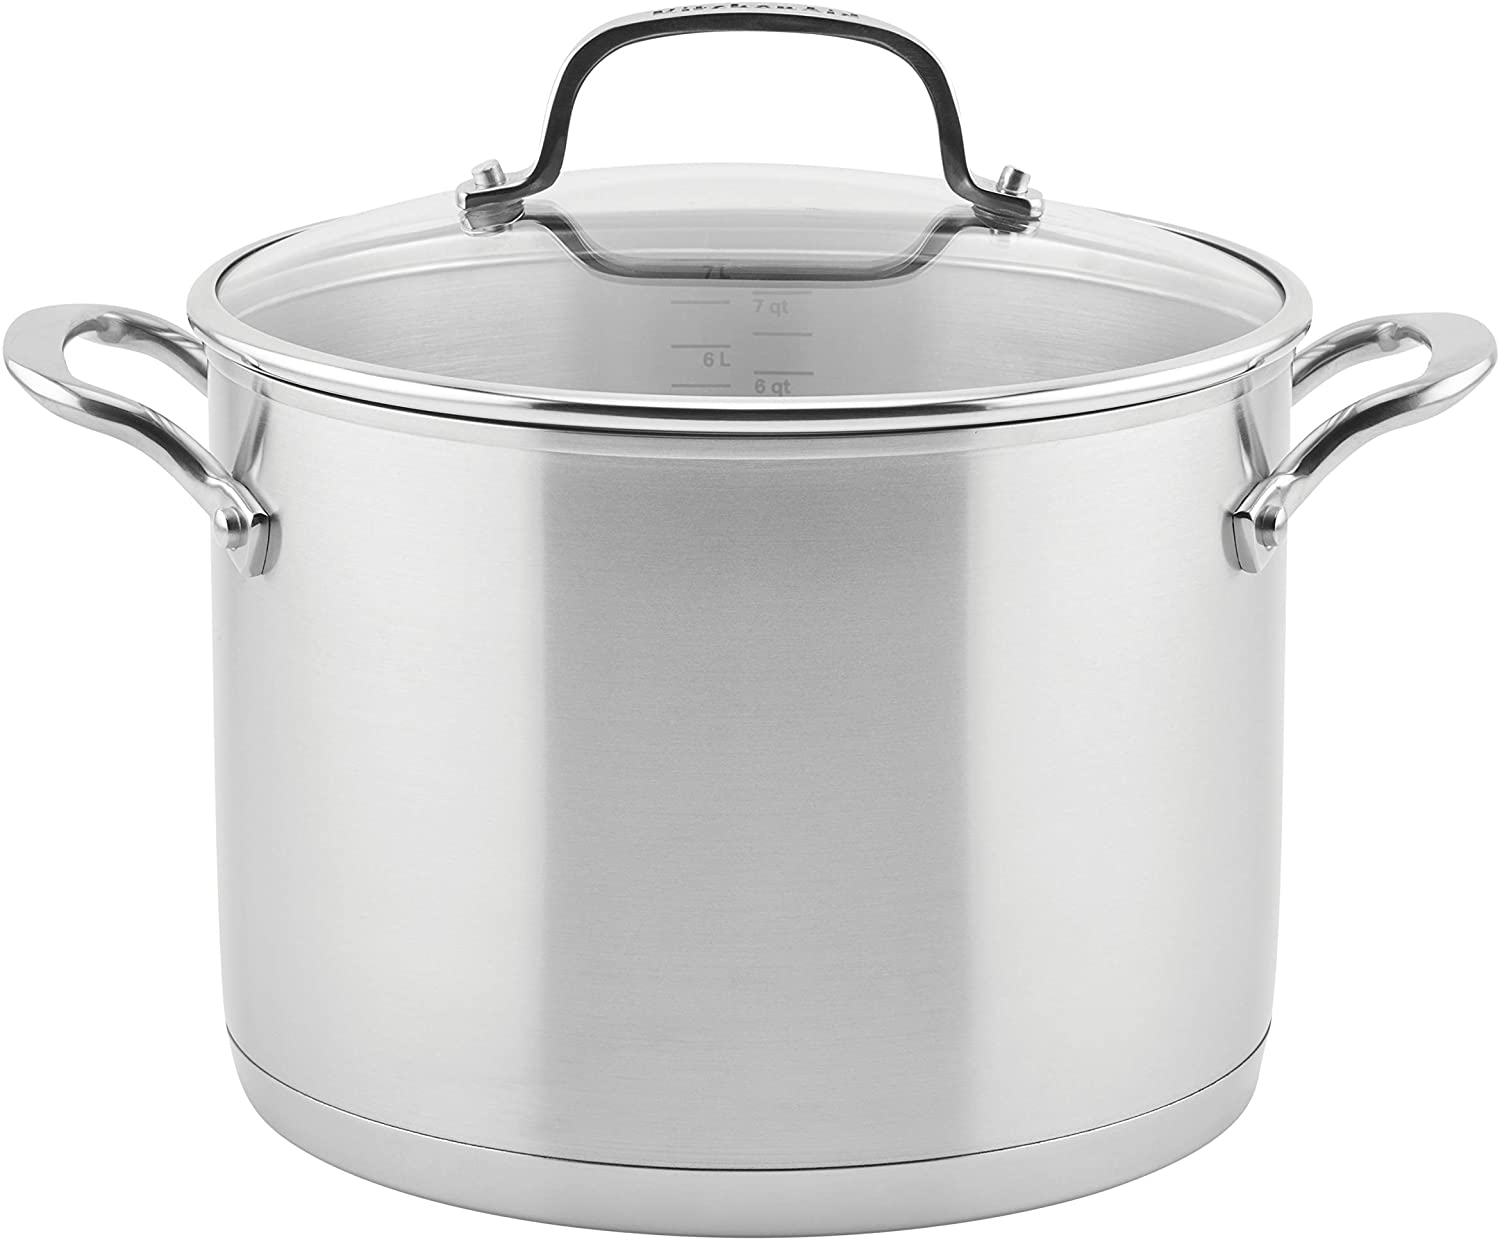 KitchenAid 3-Ply Base Brushed Stainless Steel Stock Pot/Stockpot with Lid, 8 Quart